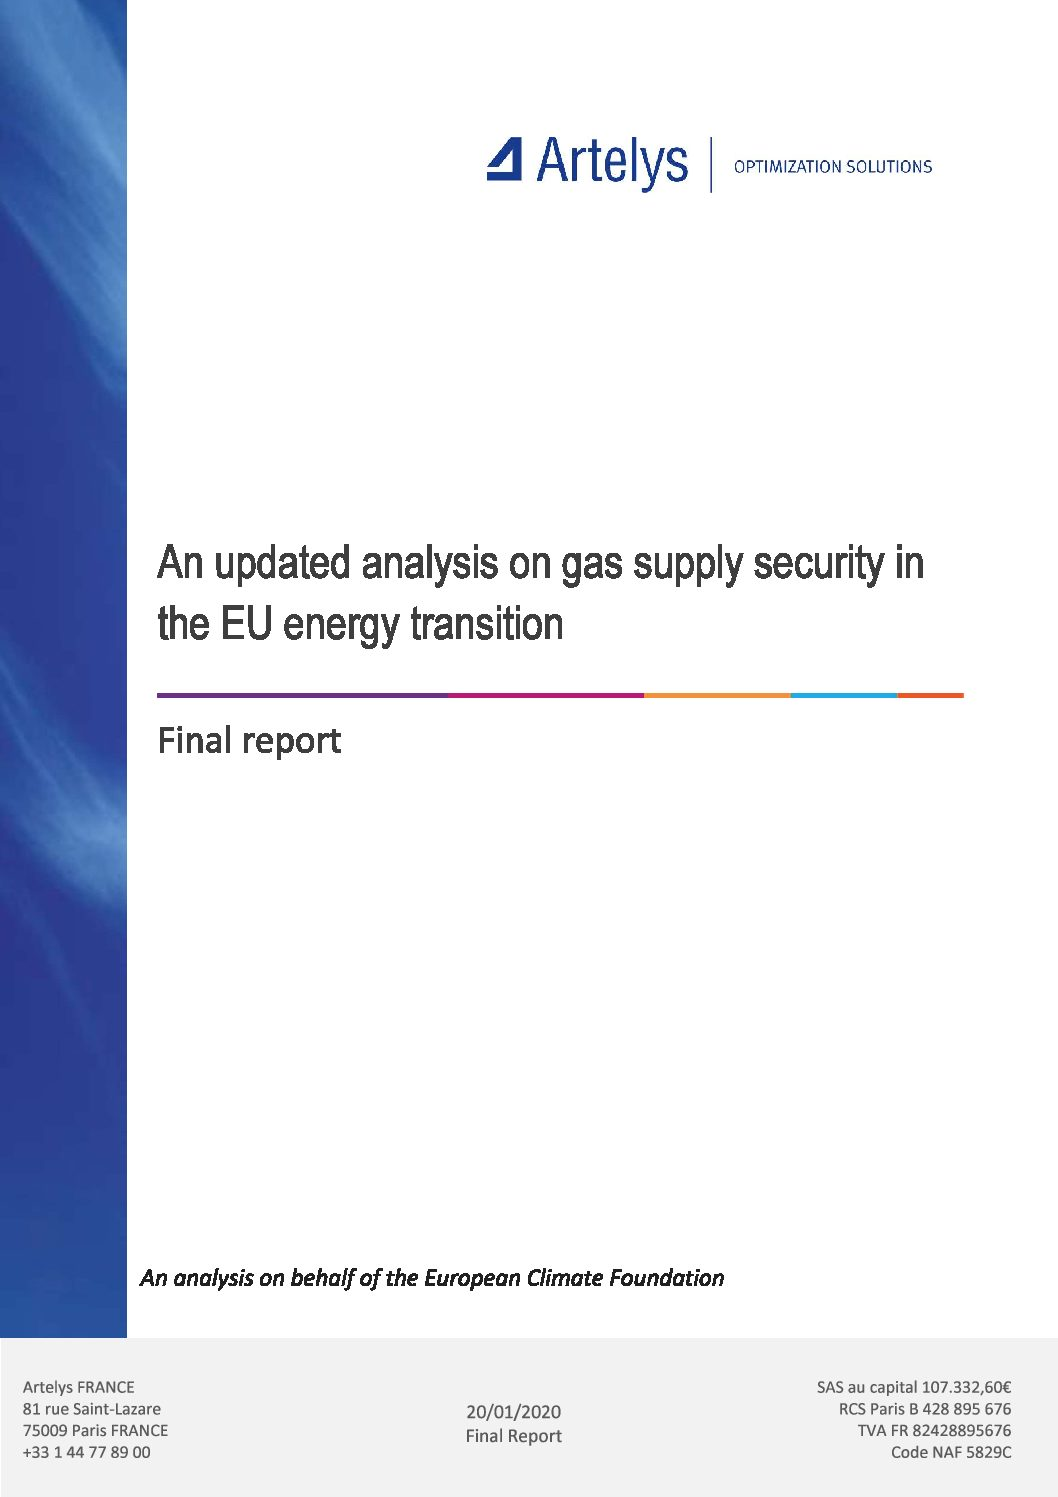 An updated analysis on gas supply security in the EU energy transition